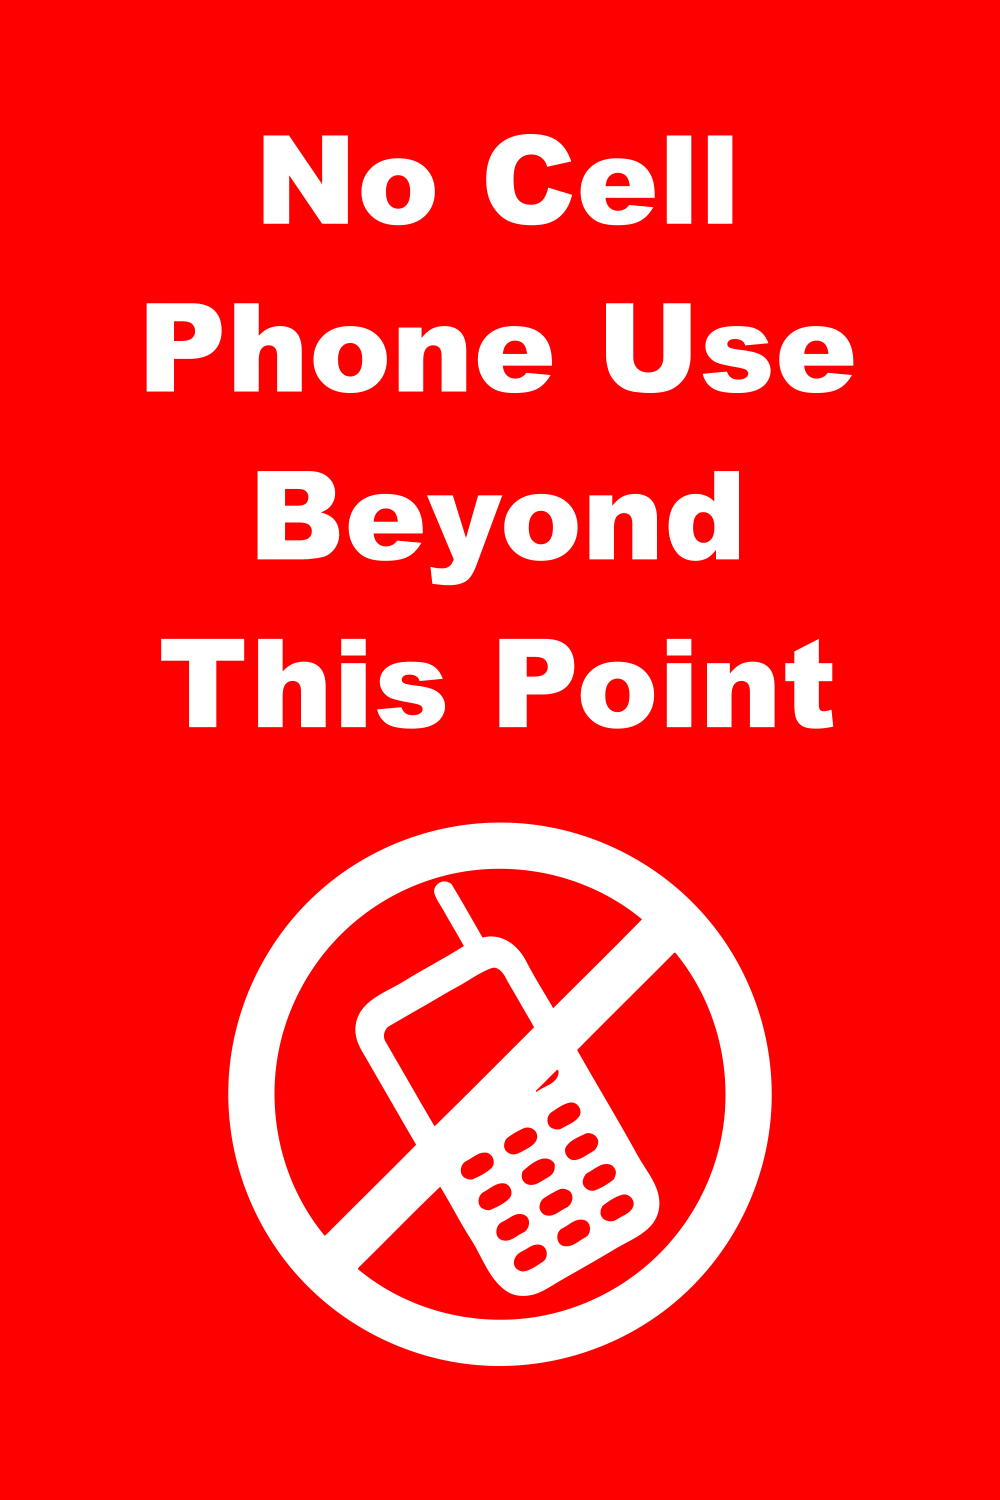 No Cell Phone Use Beyond This Point - 8